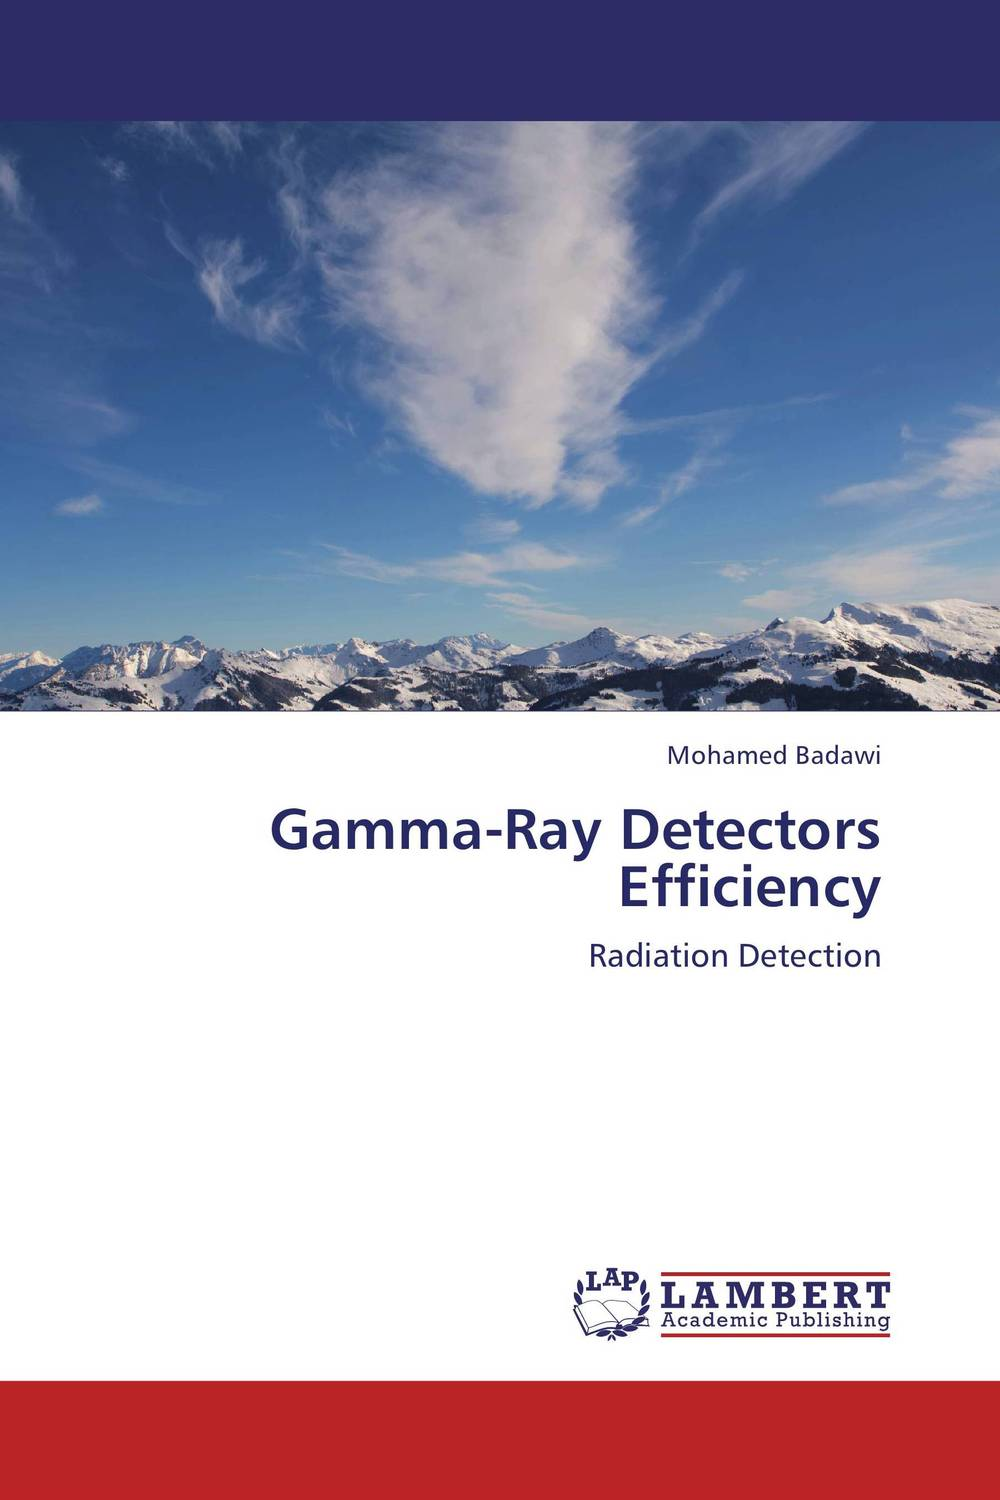 Gamma-Ray Detectors Efficiency uniform formula of interaction of fields and bodie